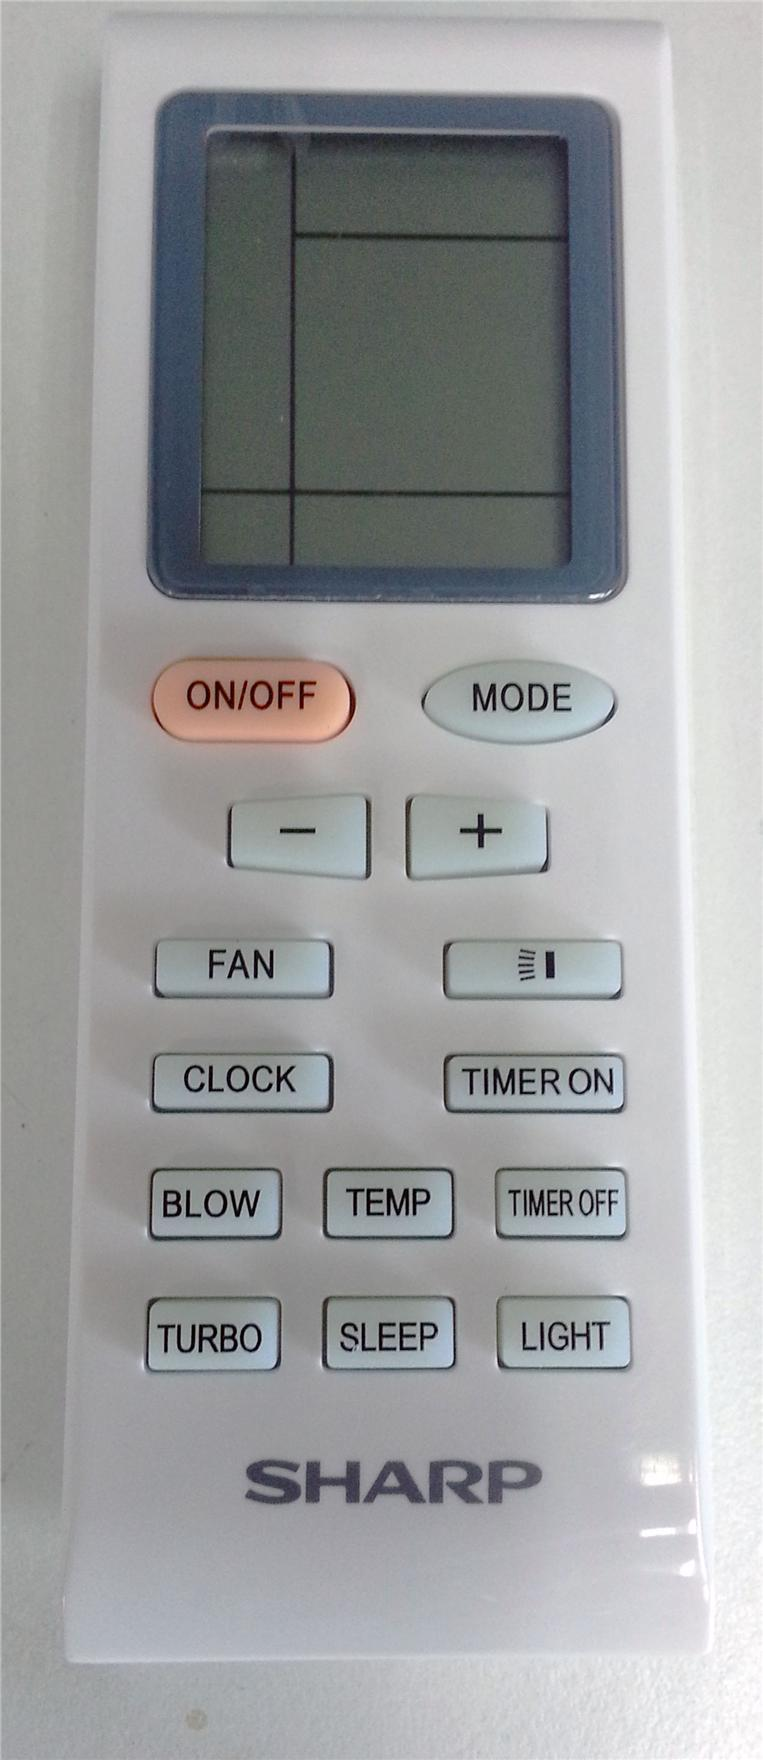 emailair air conditioner remote control manual